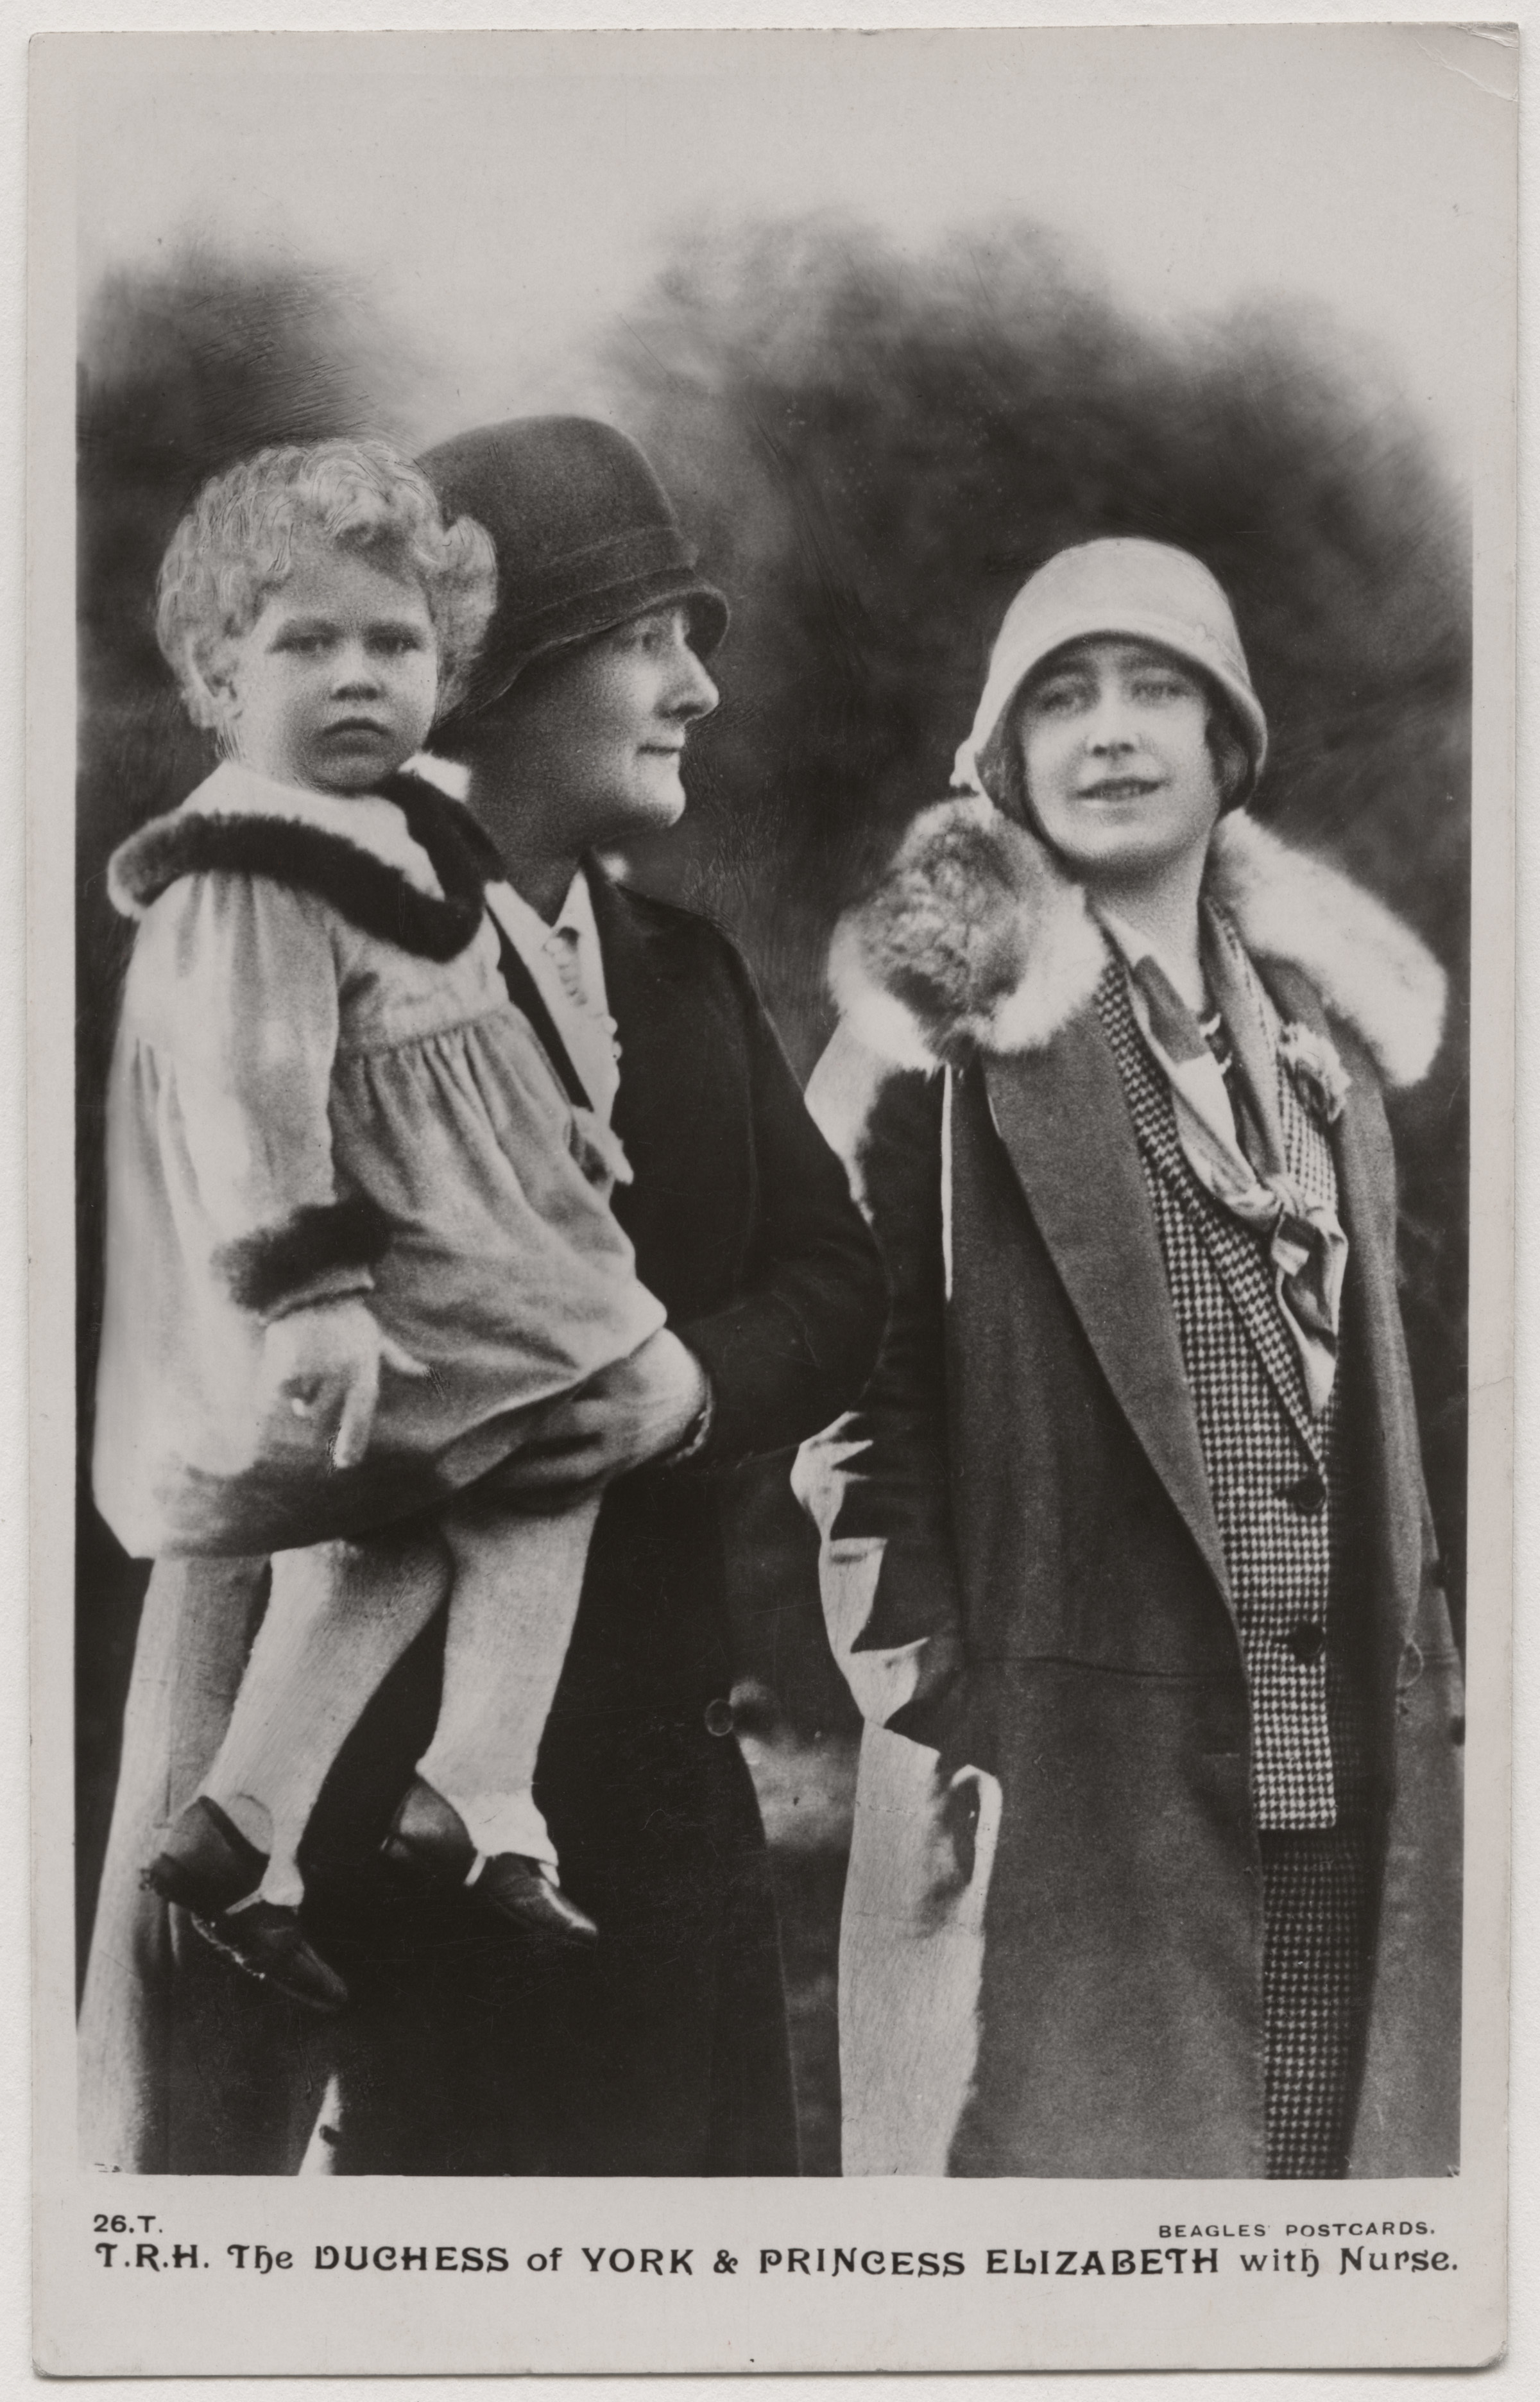 T.R.H. The Duchess of York & Princess Elizabeth with Nurse (probably Margaret 'Bobo') ©National Portrait Gallery, London